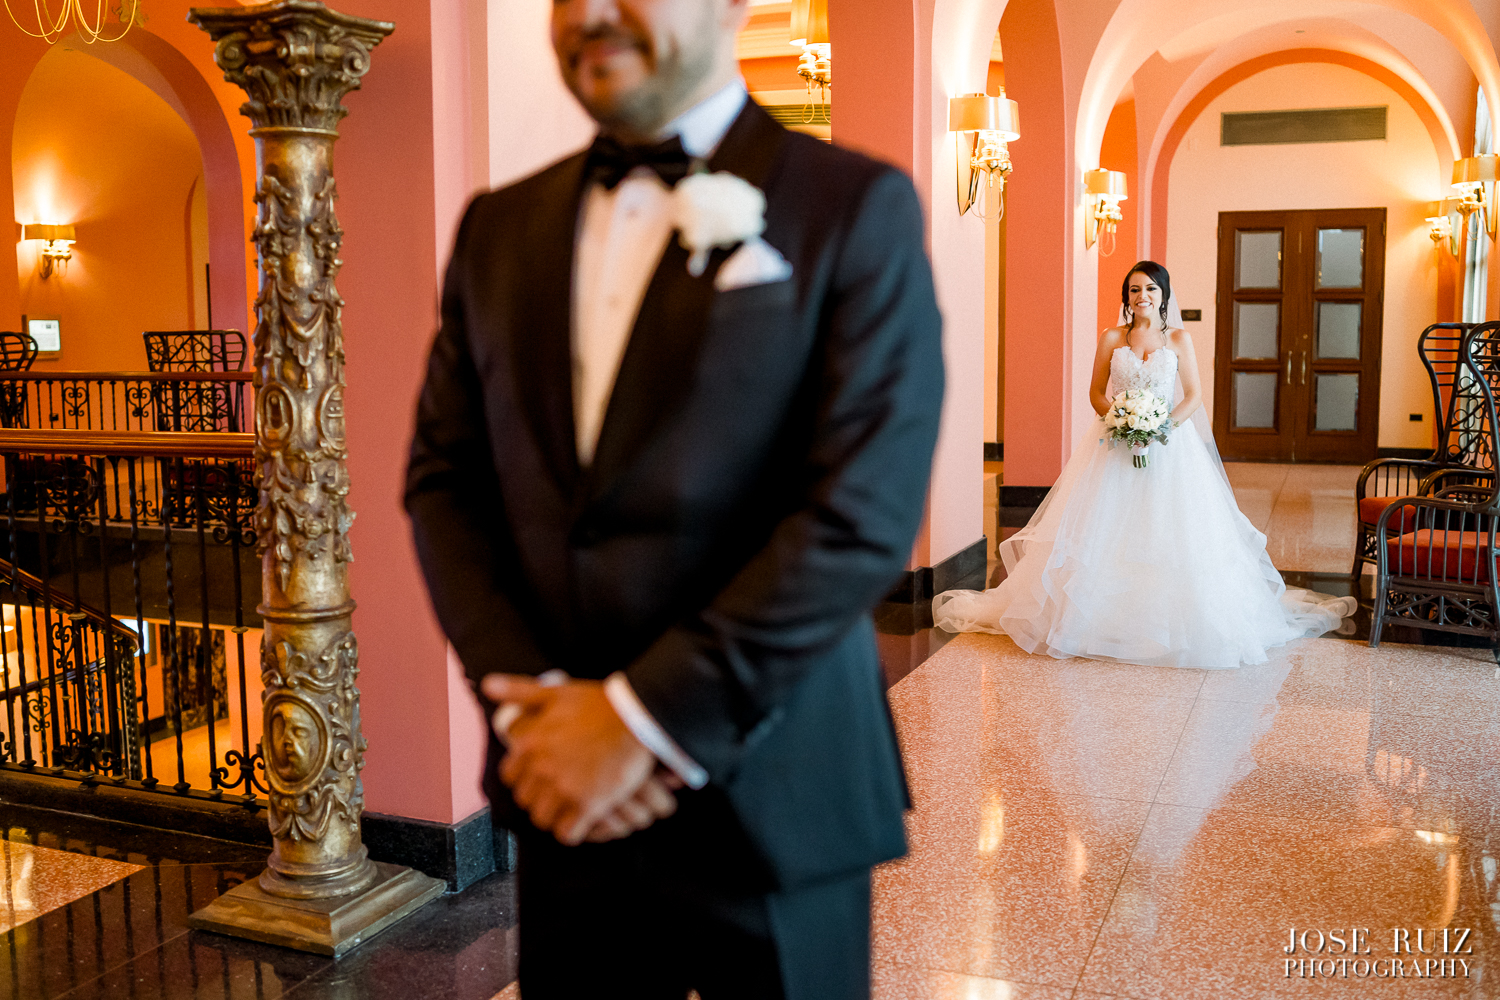 Jose Ruiz Photography- Madalyn & Joel-0023.jpg